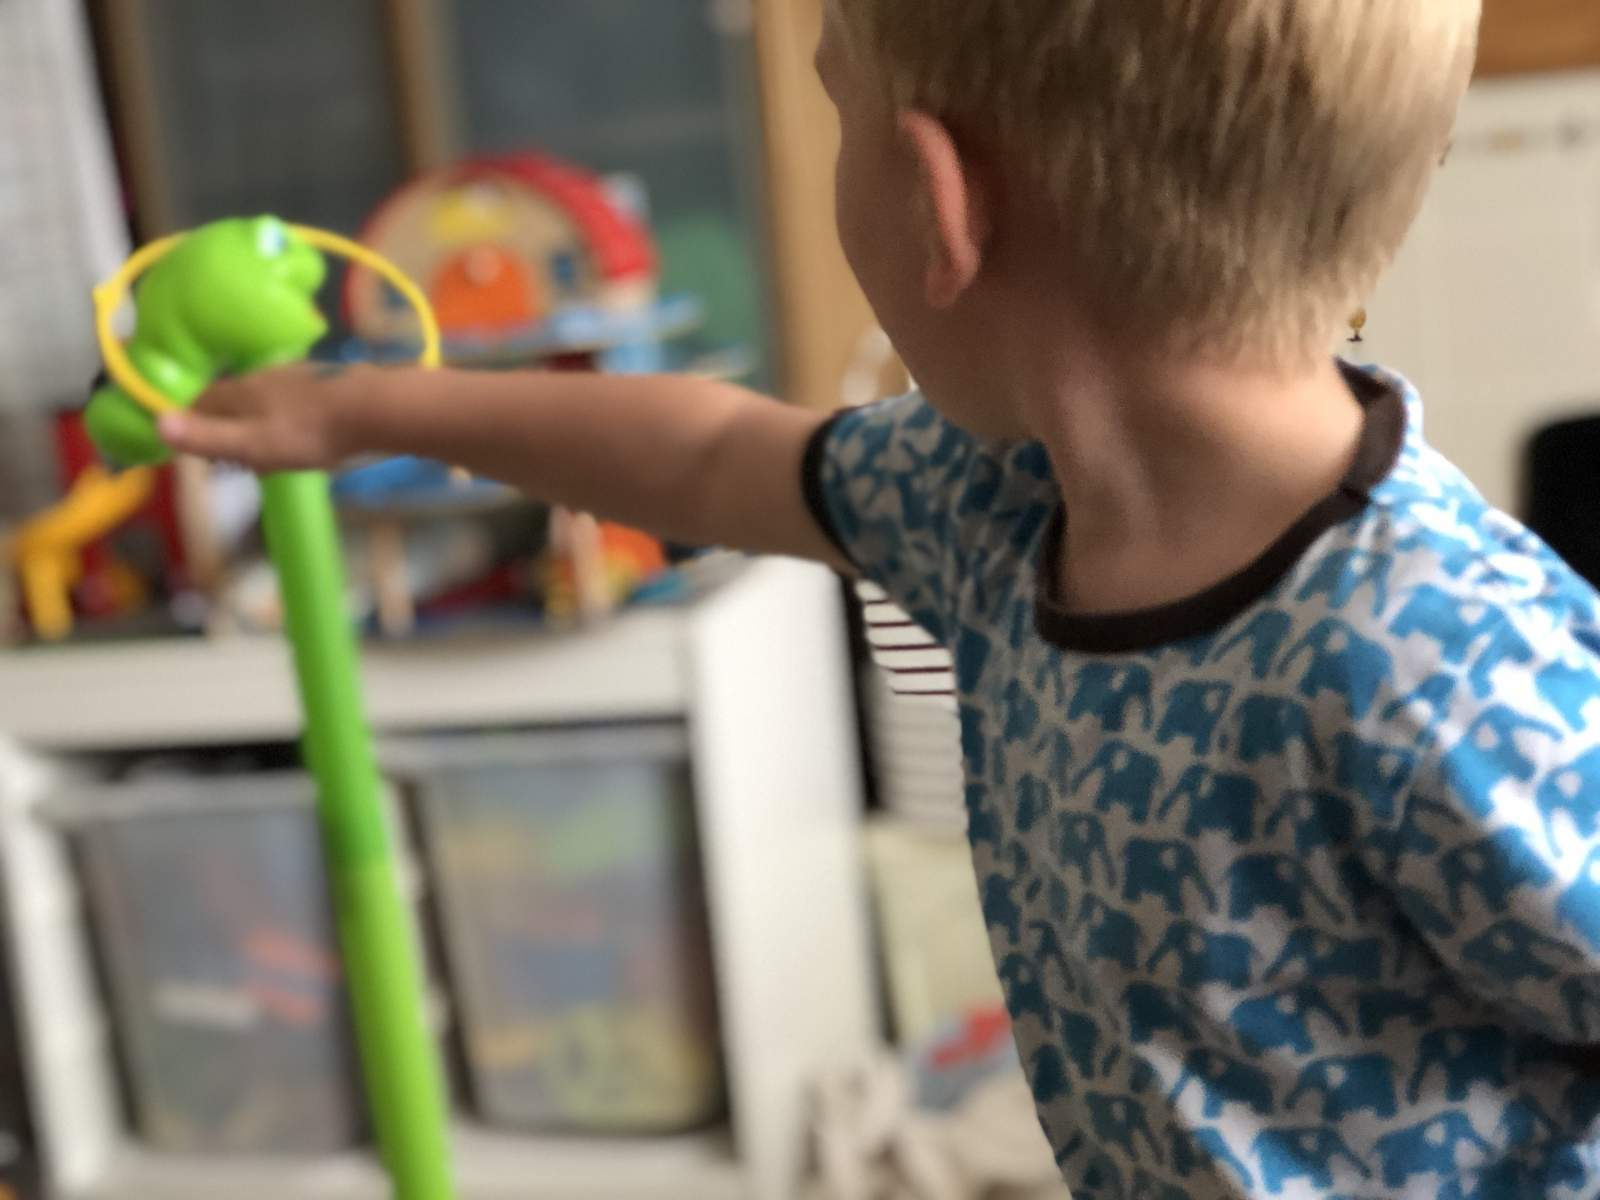 wobbly worm game played by a 3 year old